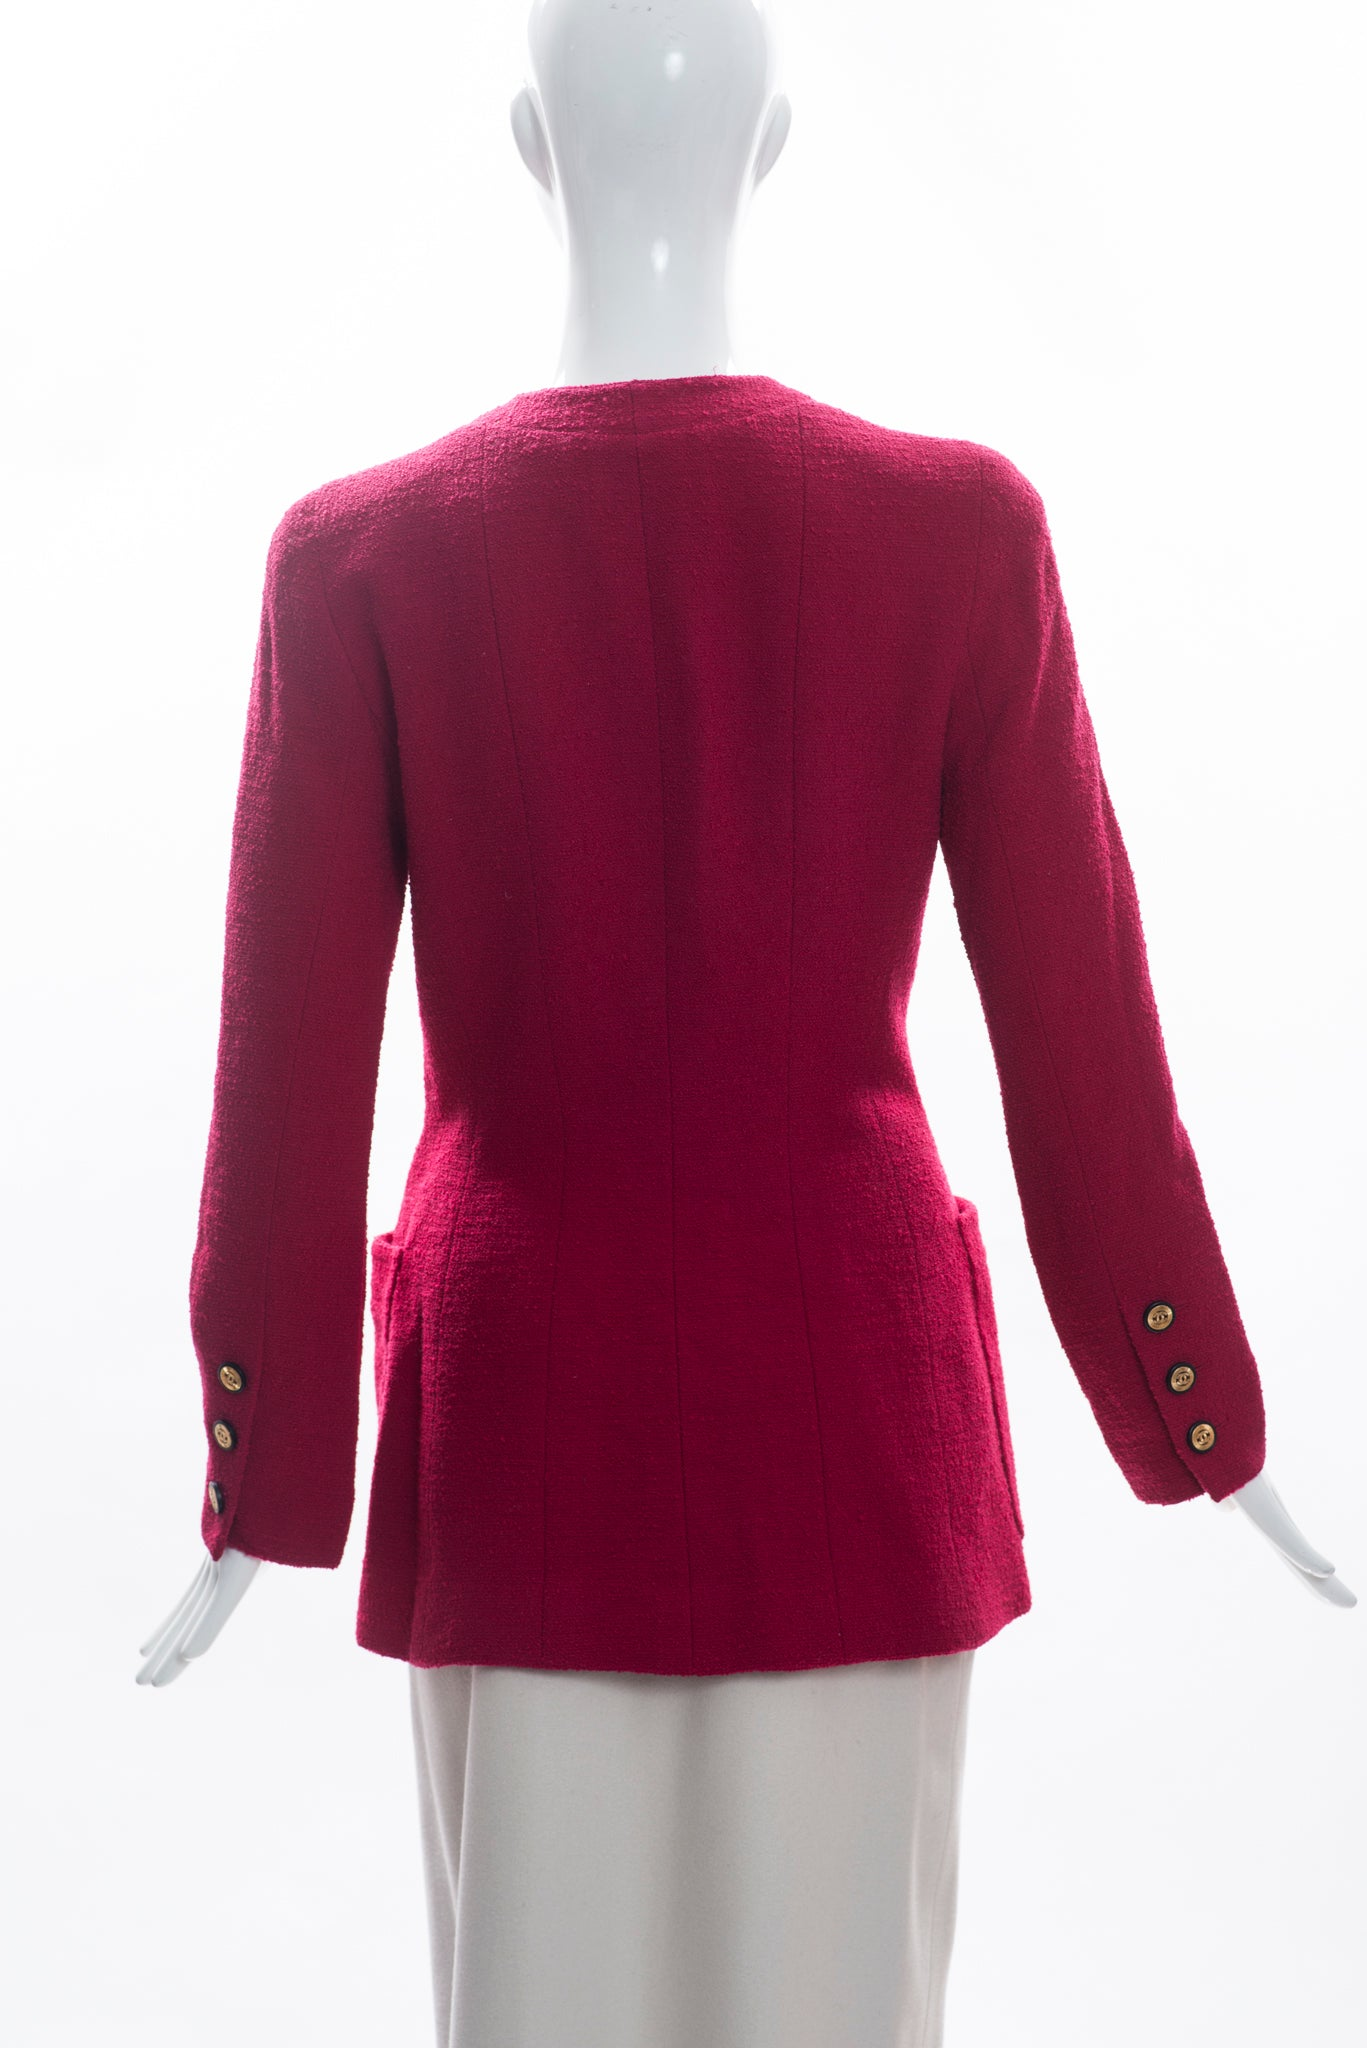 'Sold' CHANEL Raspberry Magenta Pink Wool Boulce Black Gold CC Button Blazer Jacket S